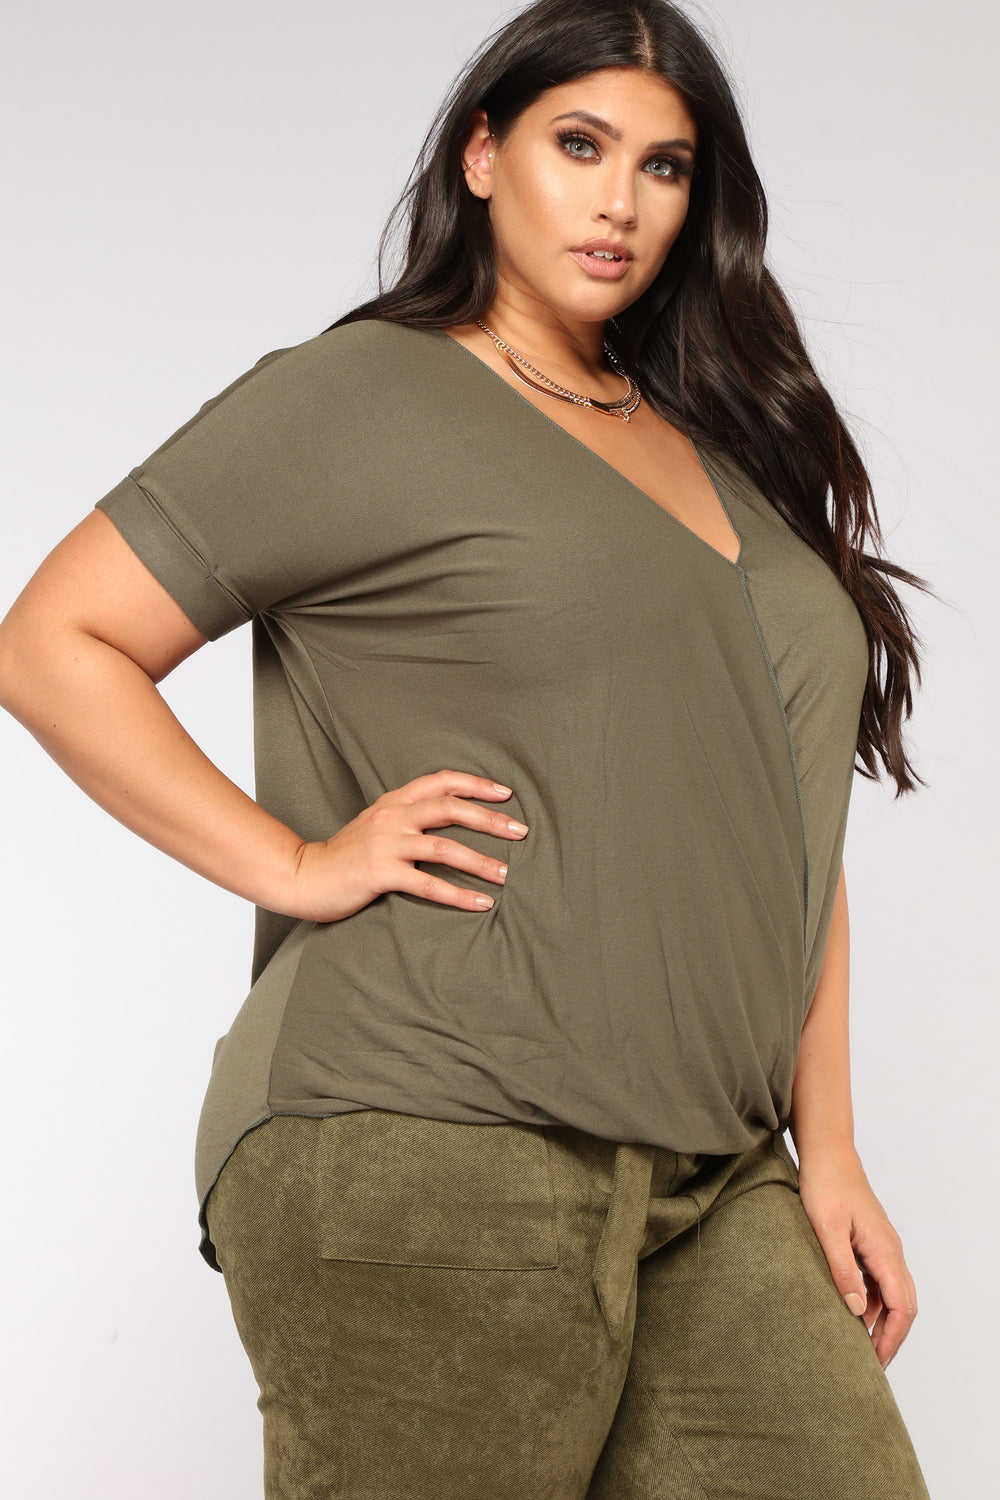 Simple Things V Neck Top - Olive